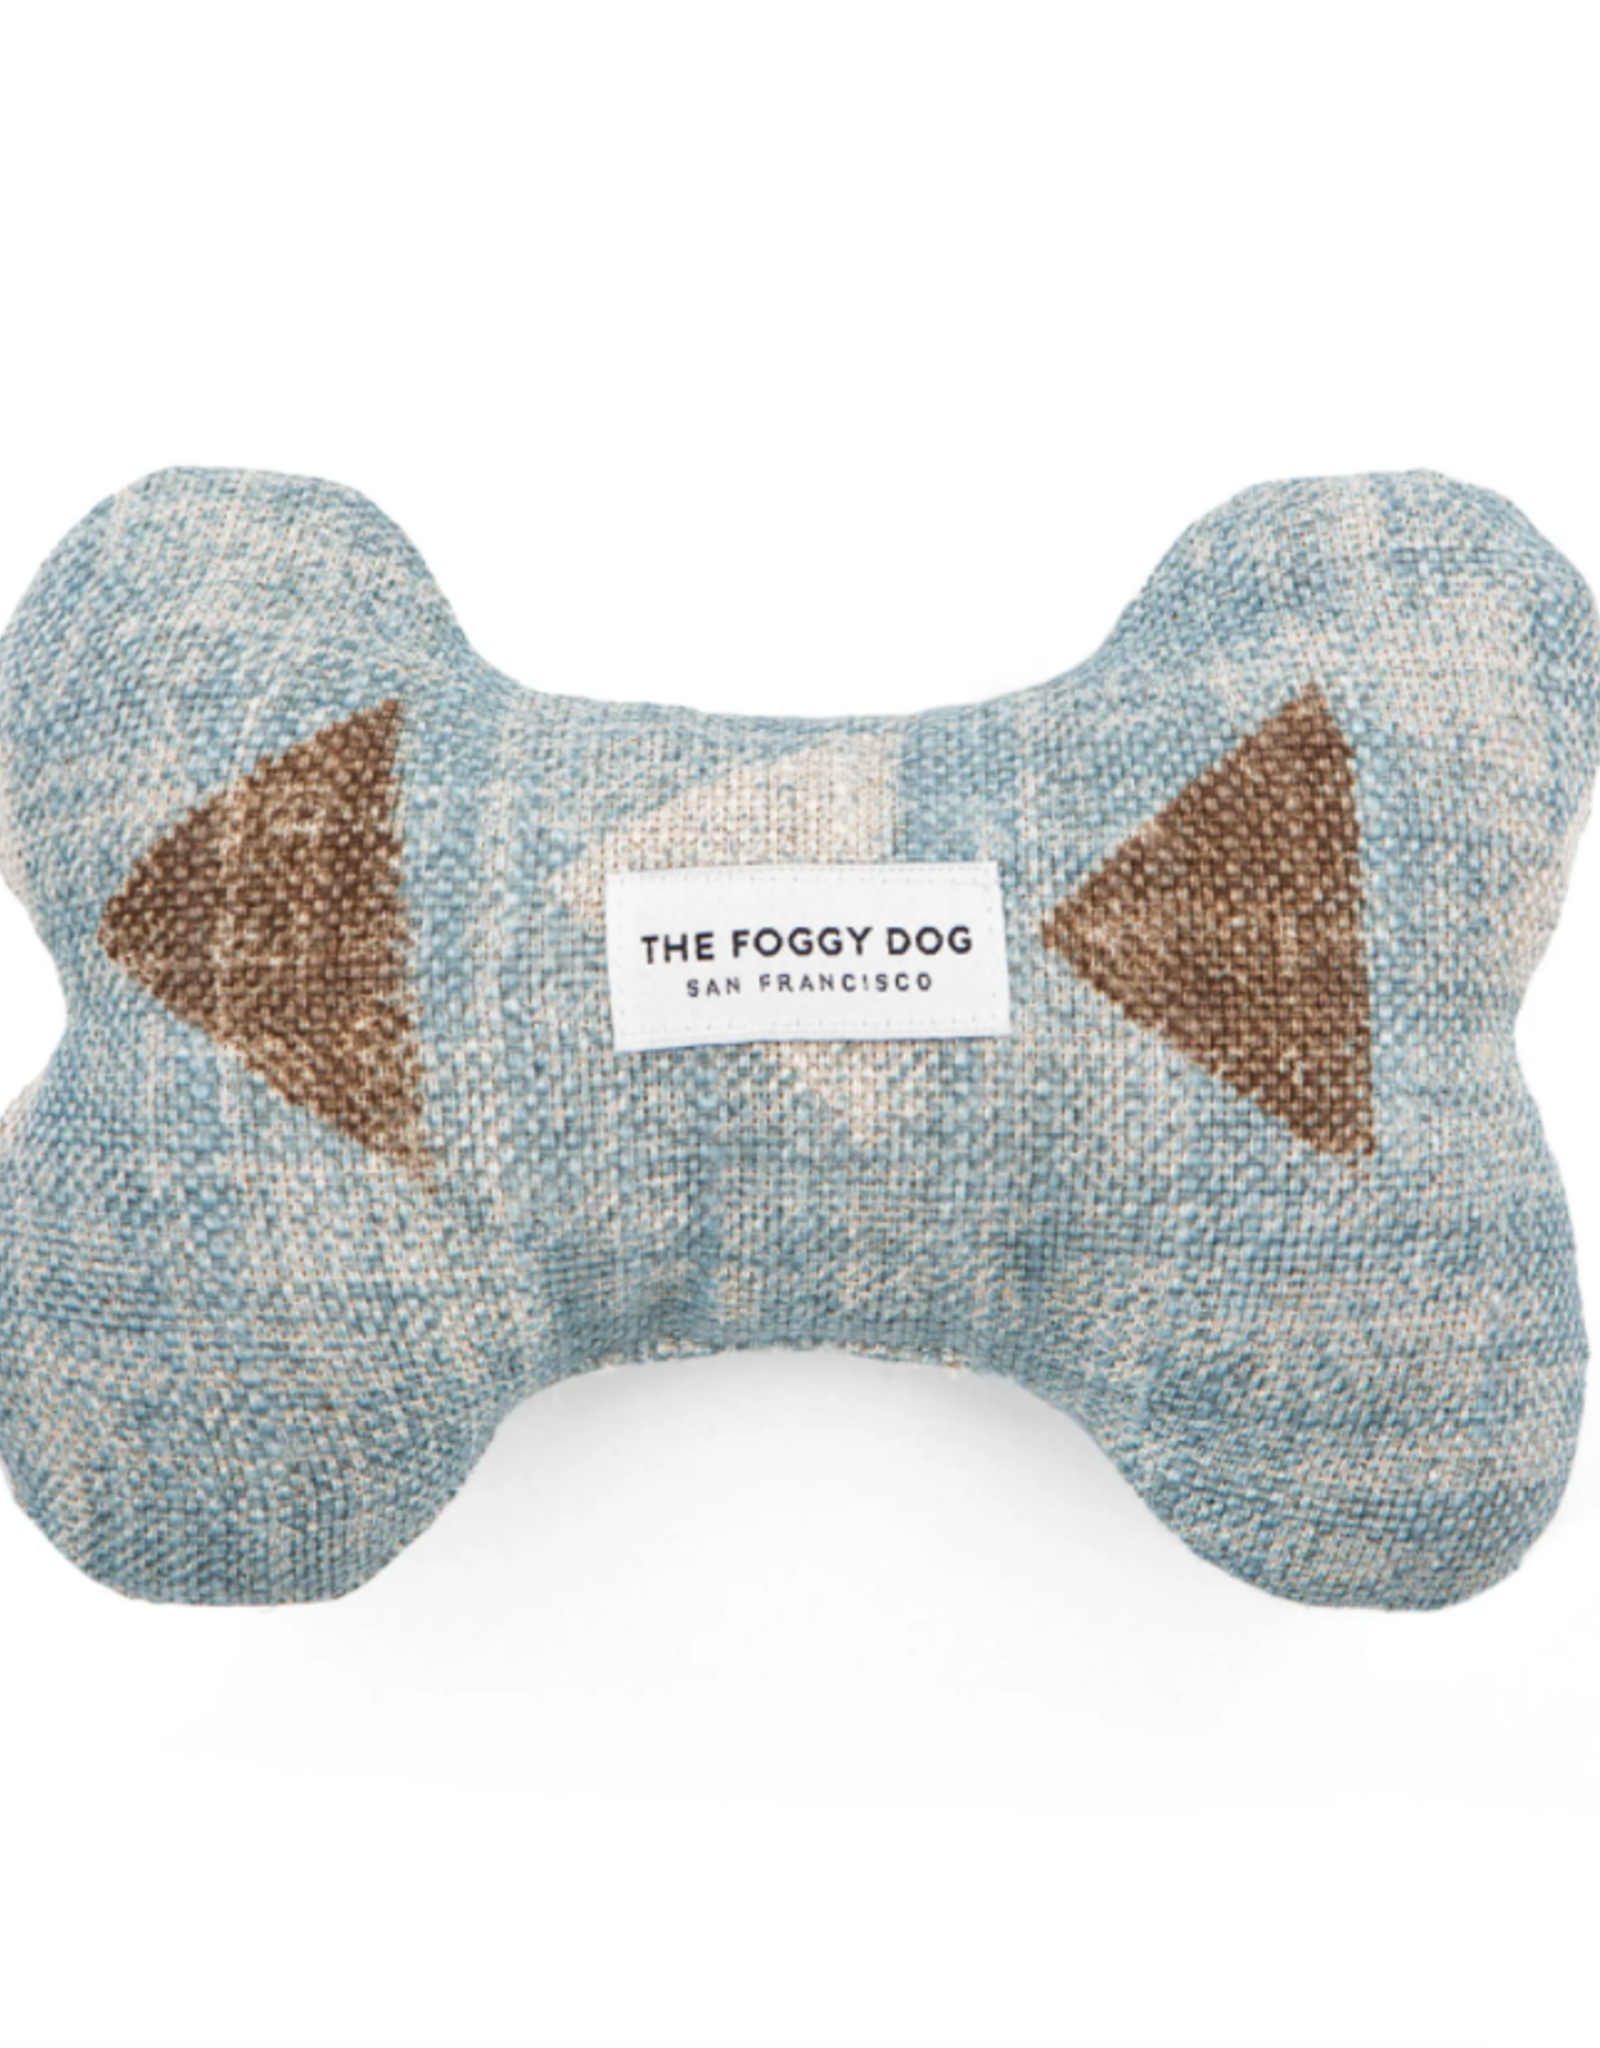 Amani Sea Dog Bone Squeaky Toy